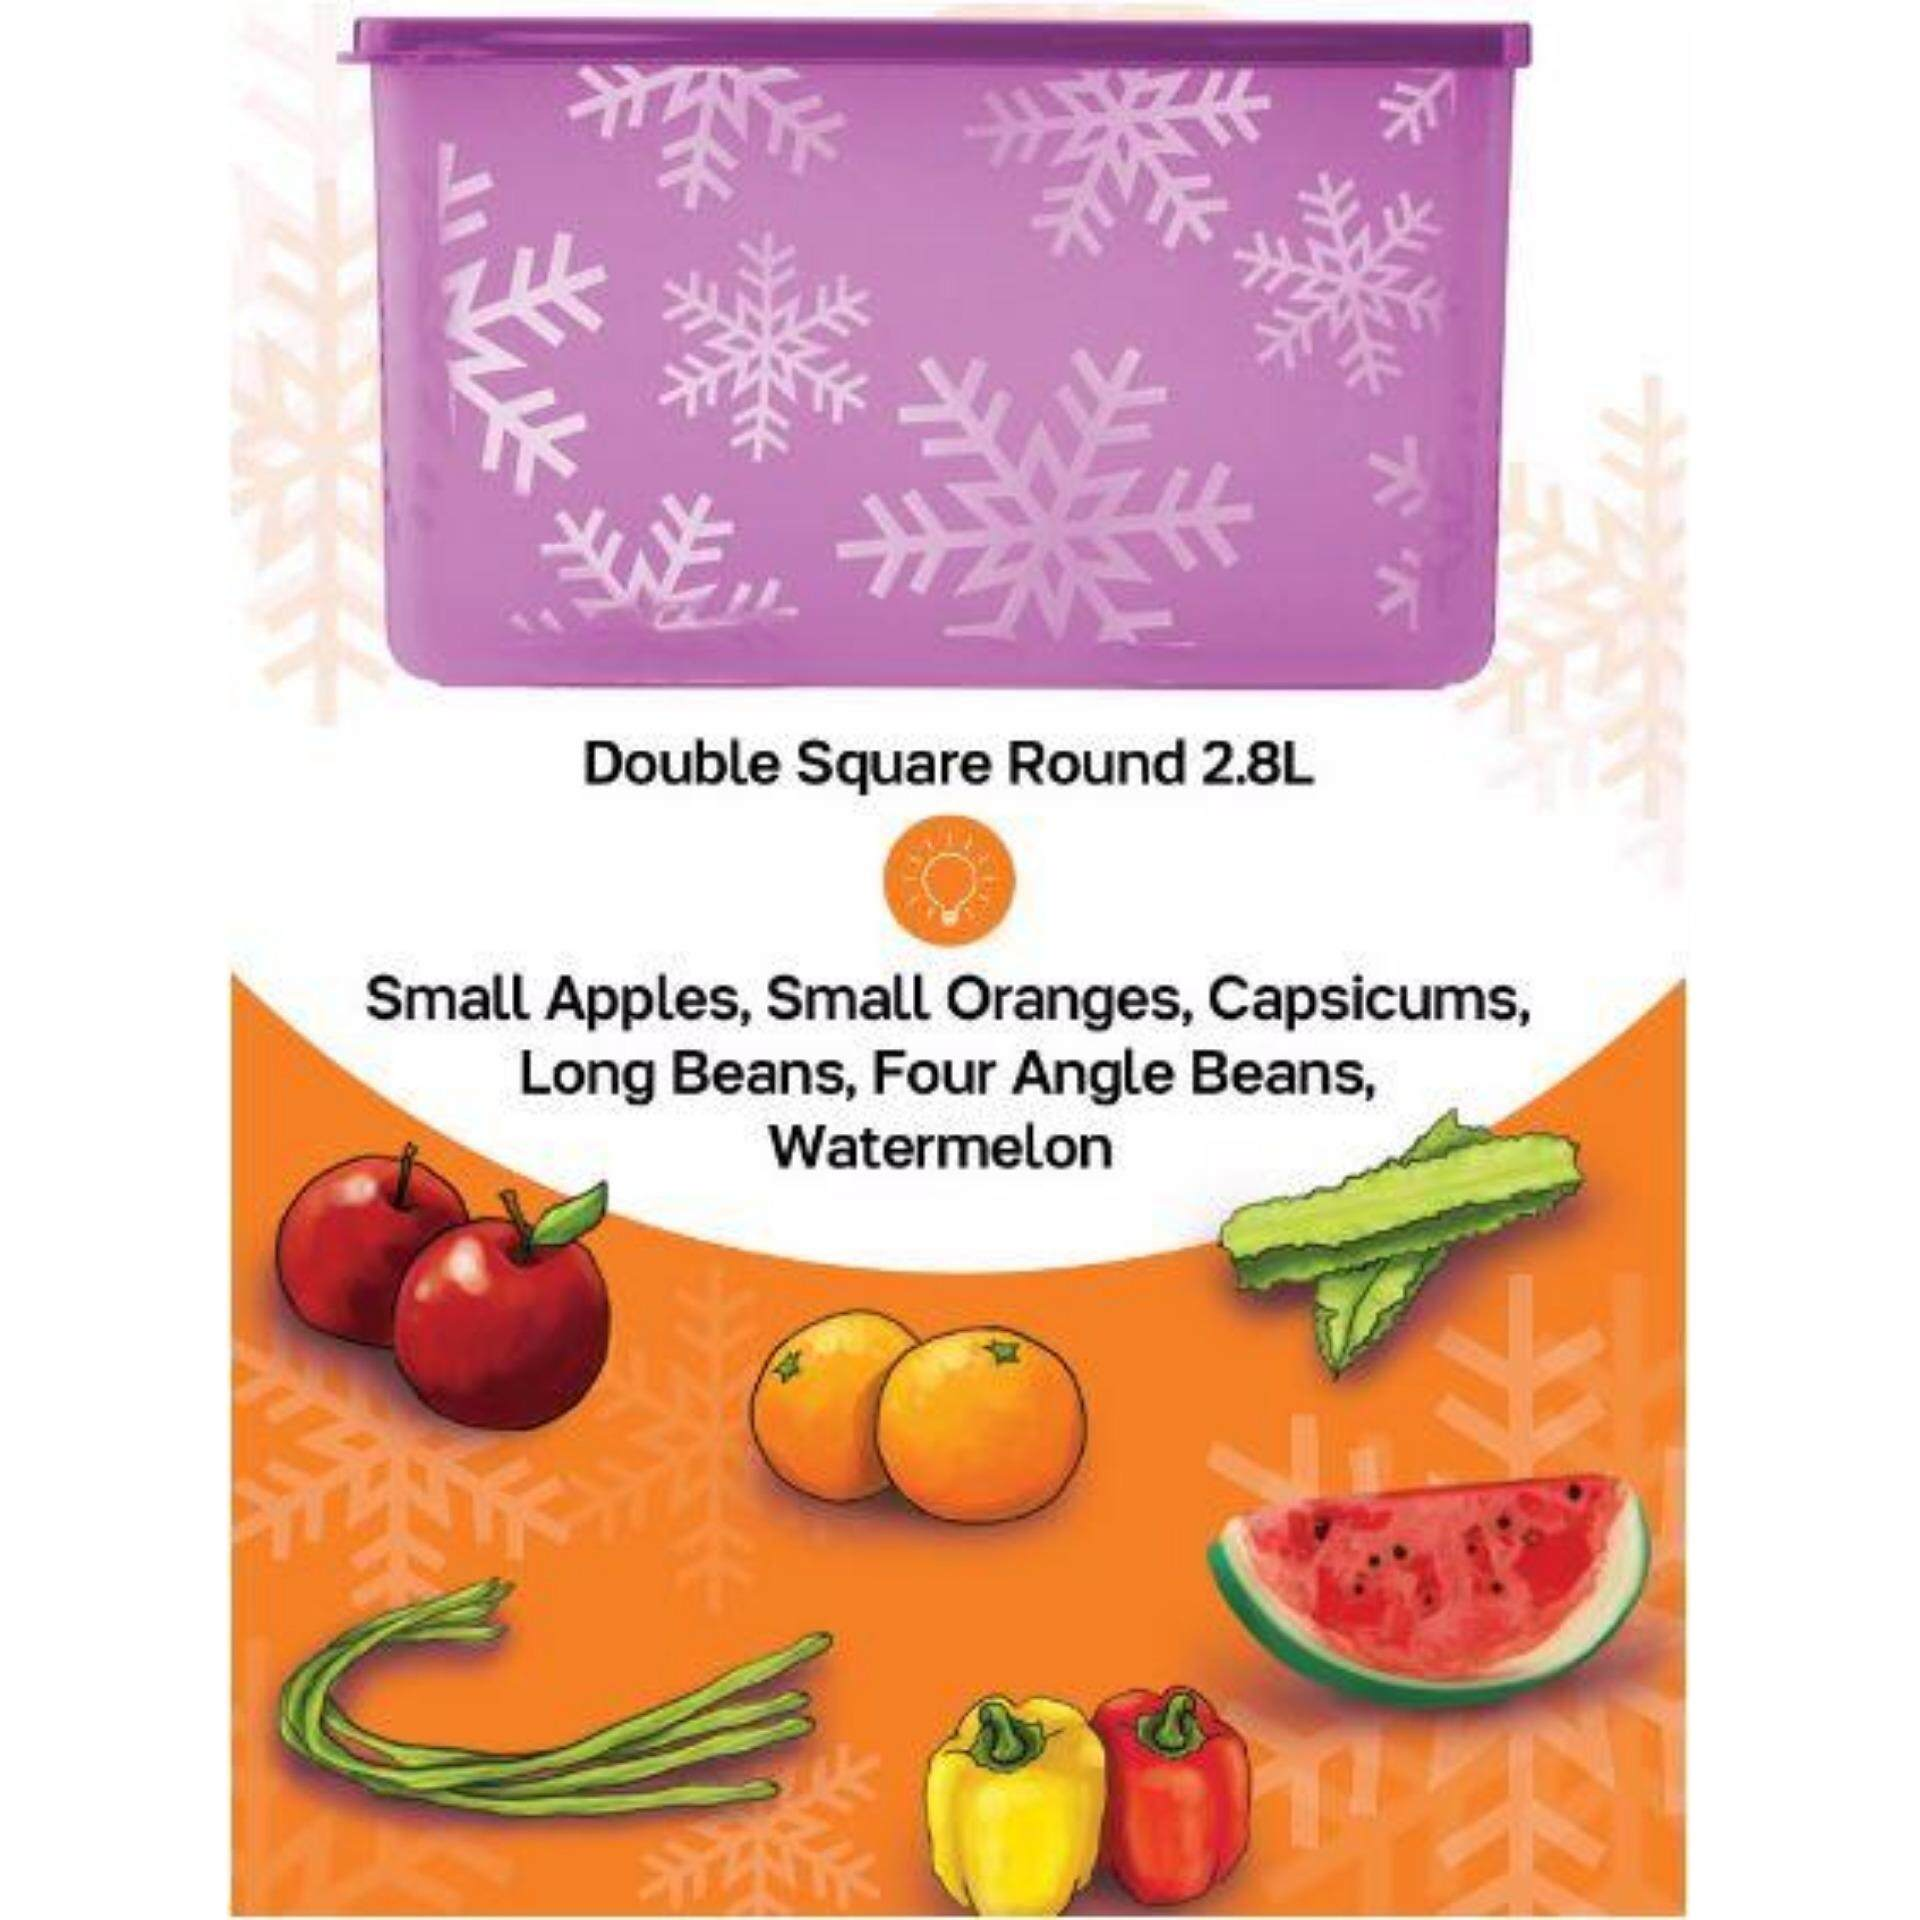 Tupperware Snowake Double Square Round (1) 2.8L pc - Random Color Send